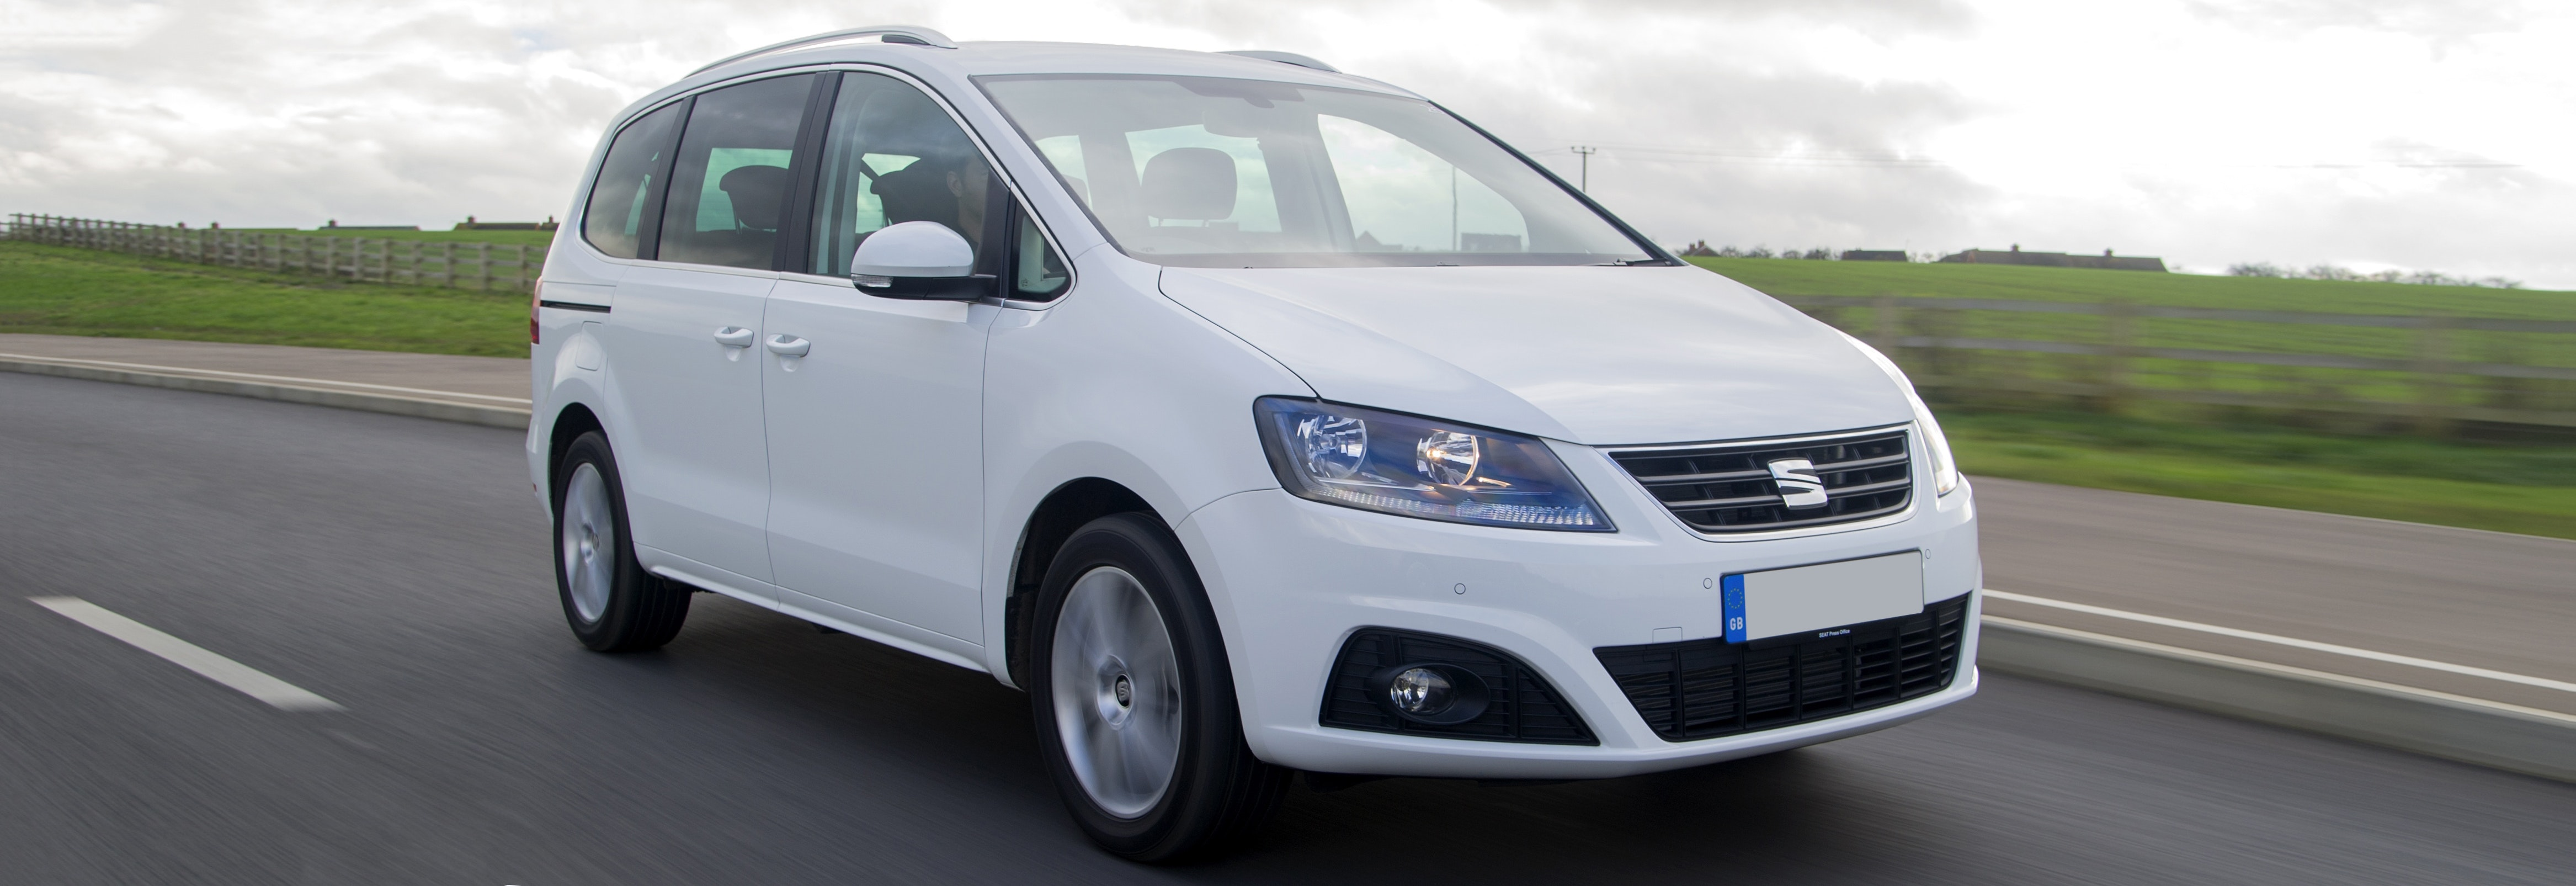 White SEAT Alhambra Driving, Viewed From The Front